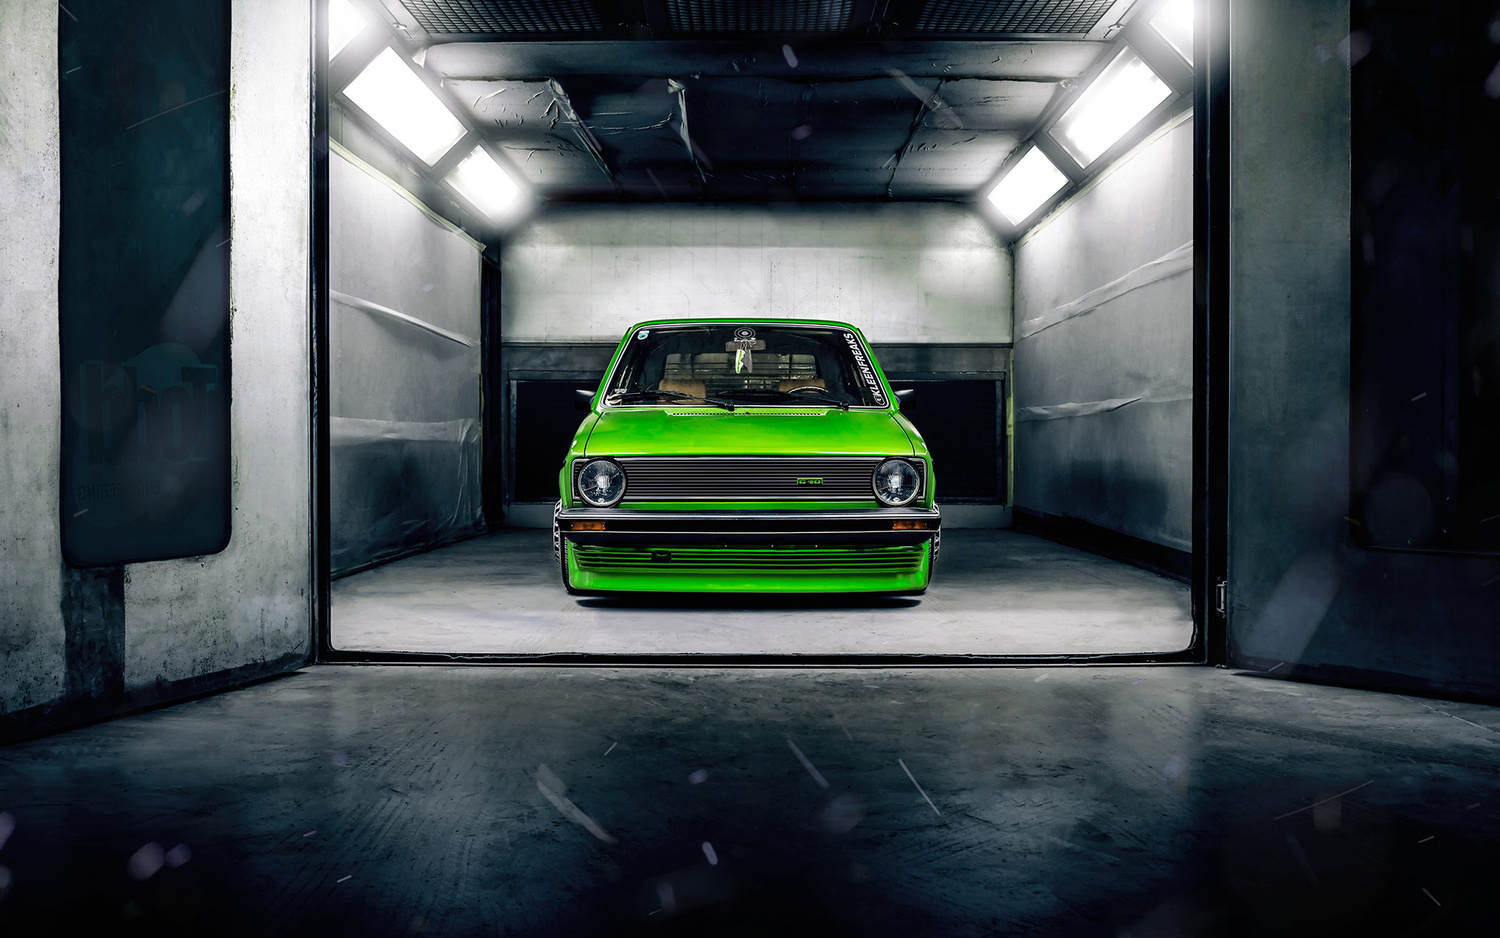 Volkswagen Golf by Lee Cant